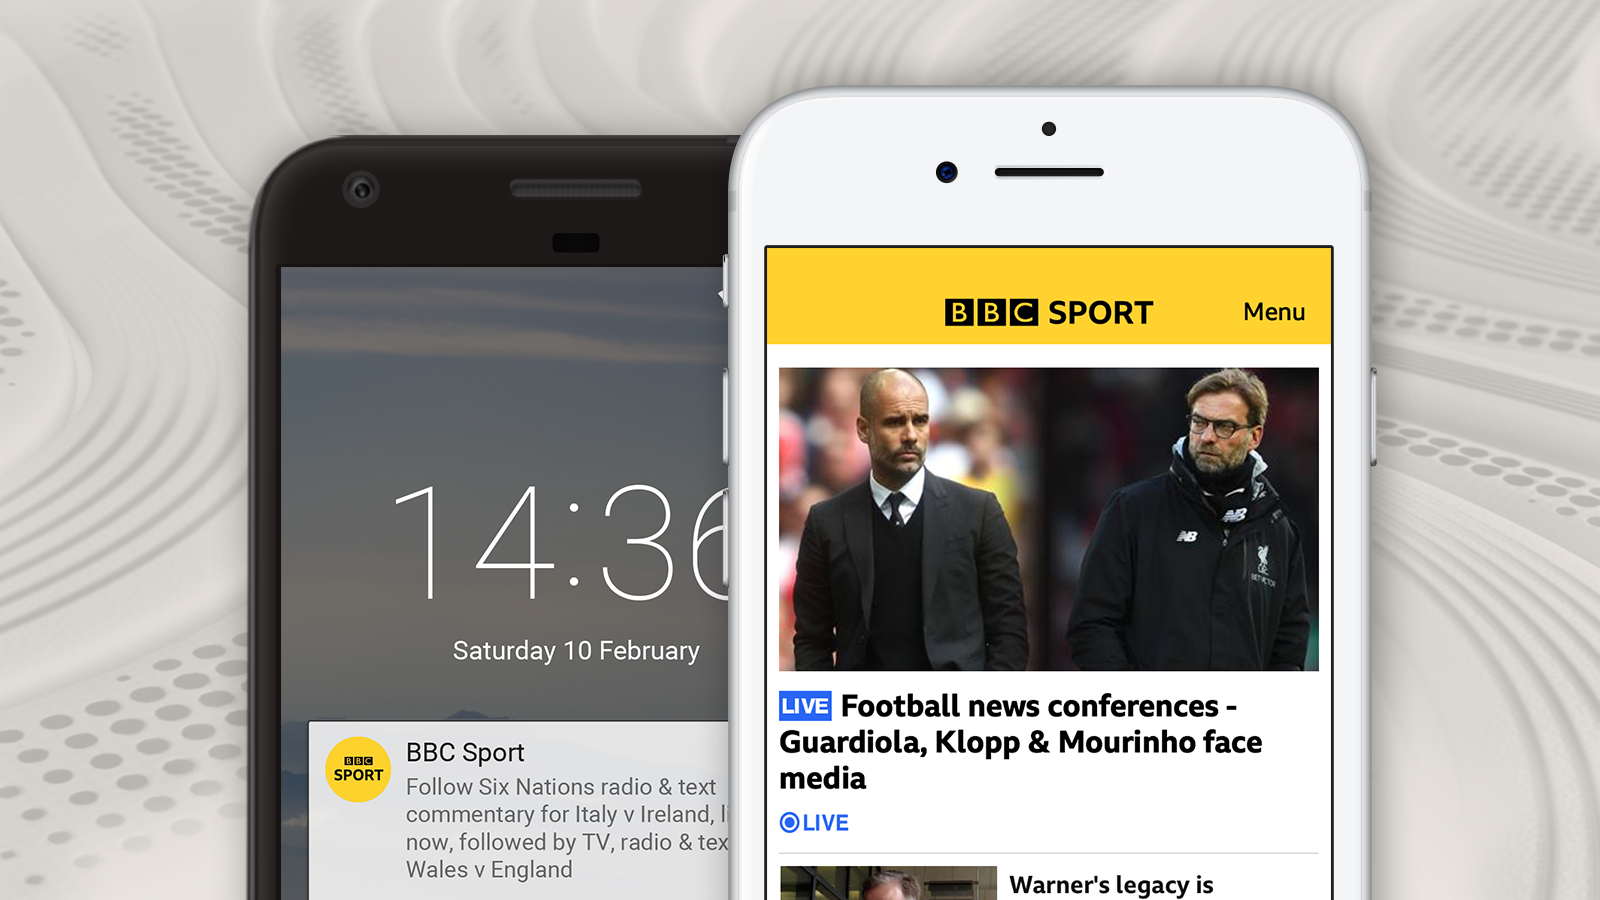 Notifications, Live Guide, MySport and social media with BBC Sport